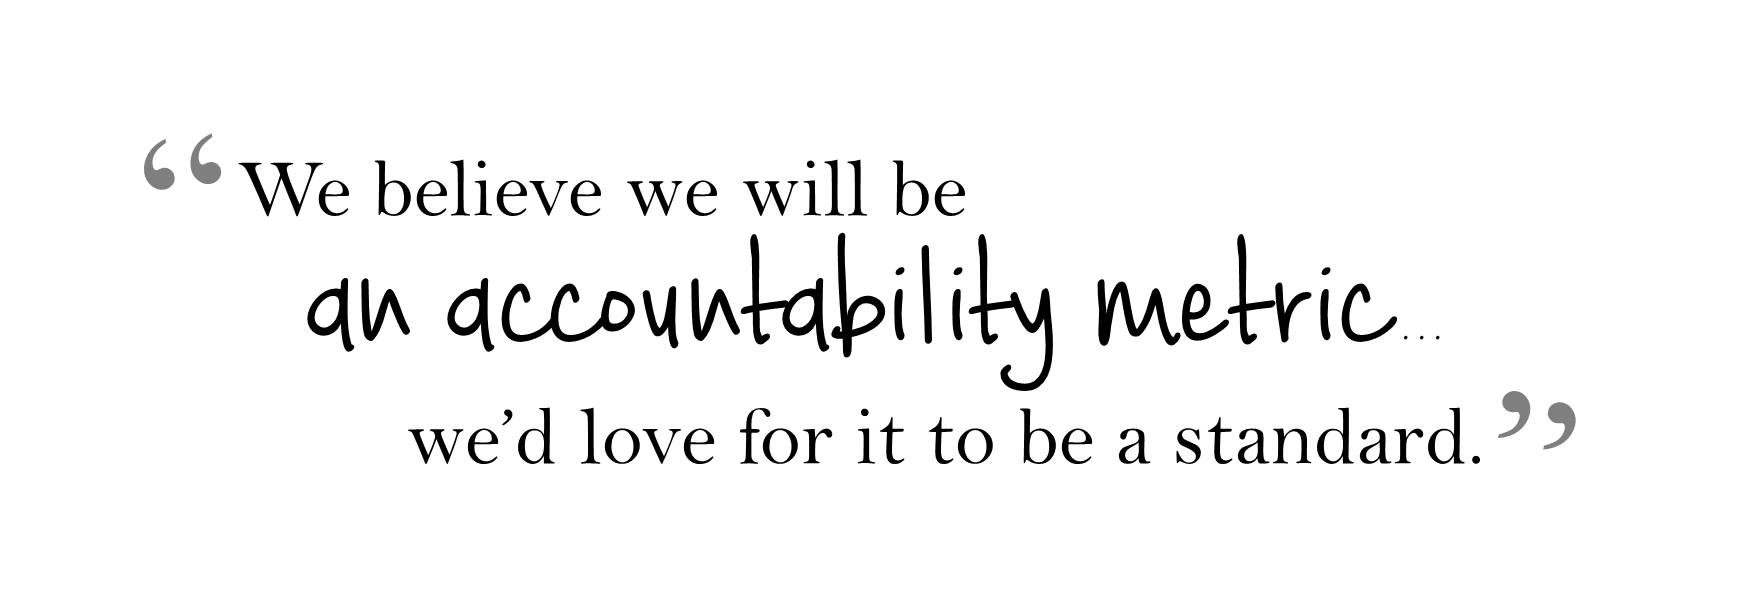 We believe we will be an accountability metric